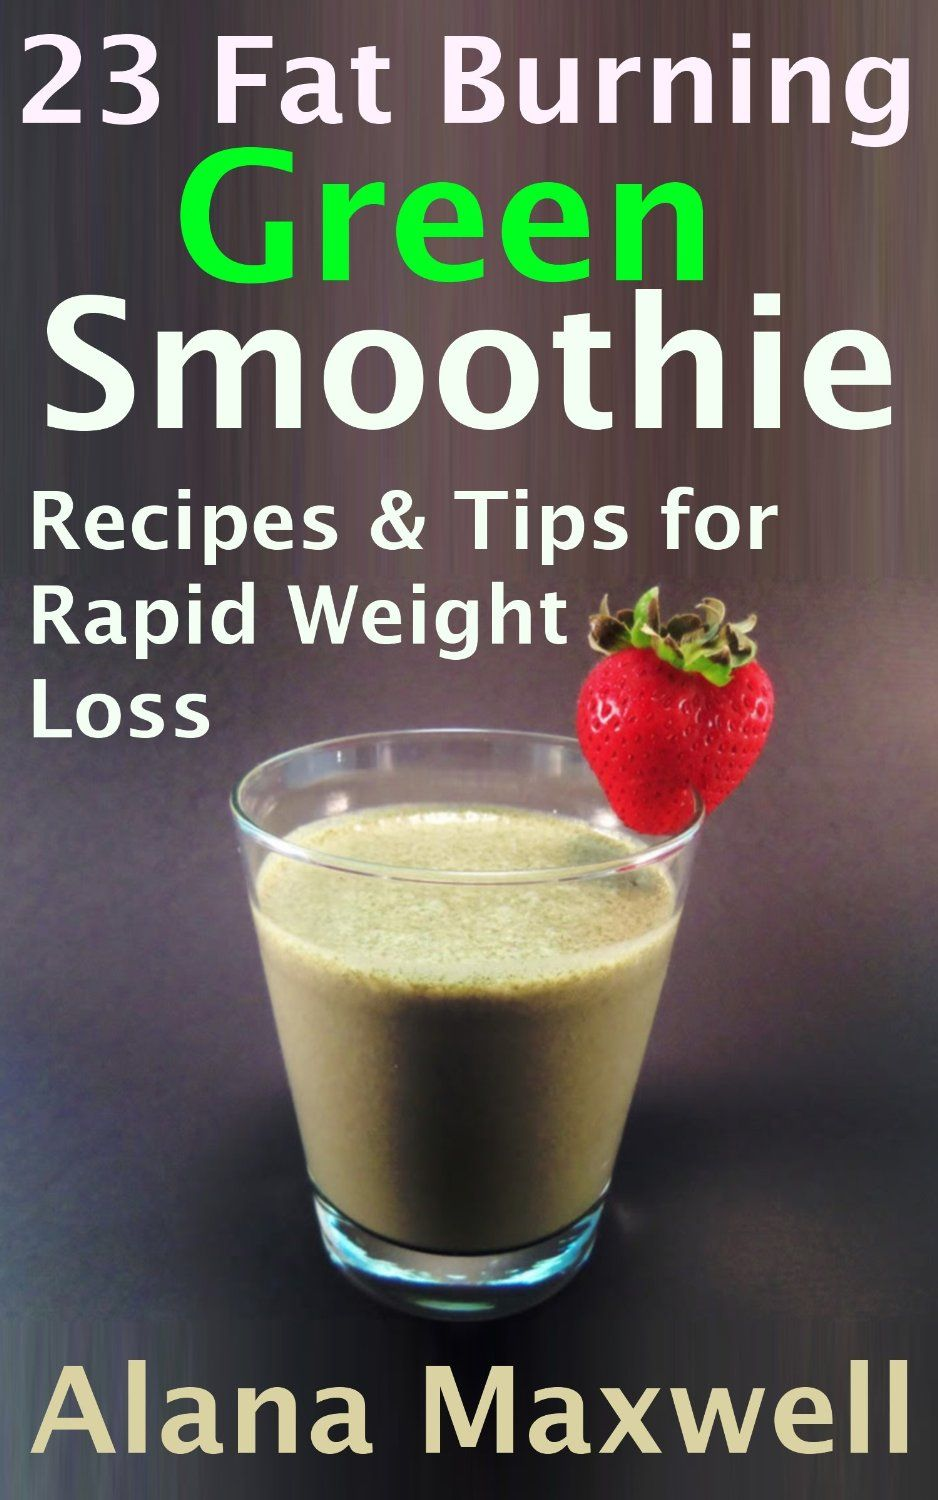 23 Fat Burning Green Smoothie Recipes Tips For Rapid Weight Loss, by Alana Maxwell ($0.99)